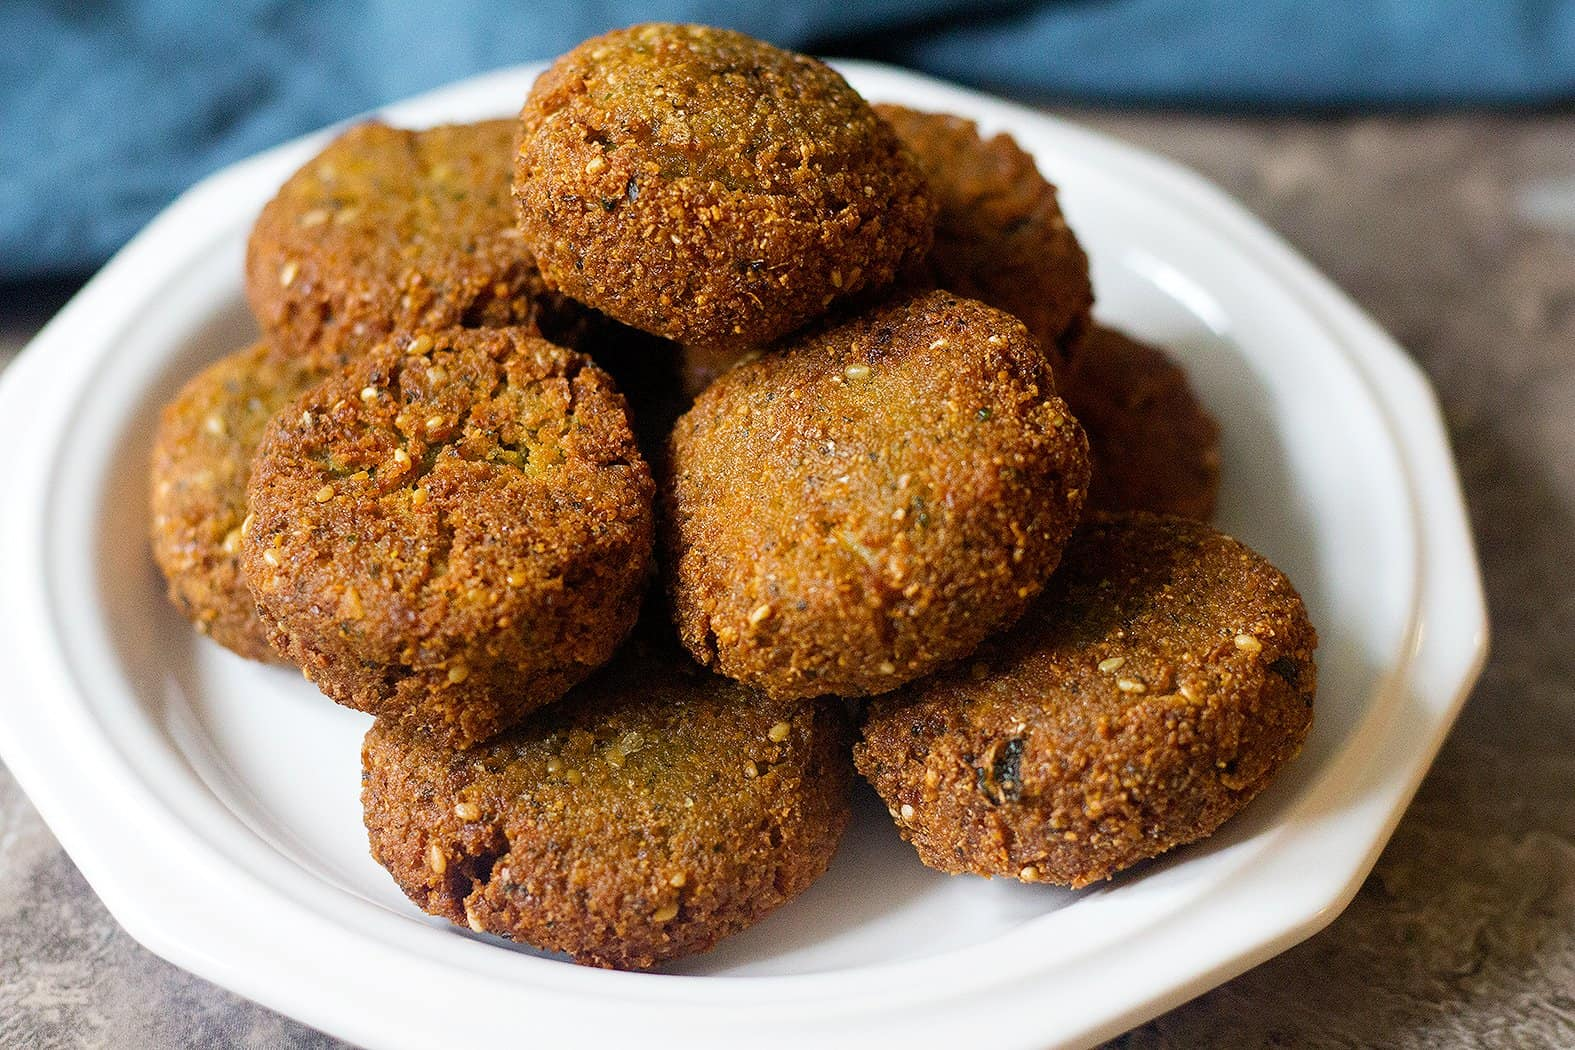 These vegan chickpea patties ate crispy on the outside and tender on the inside.